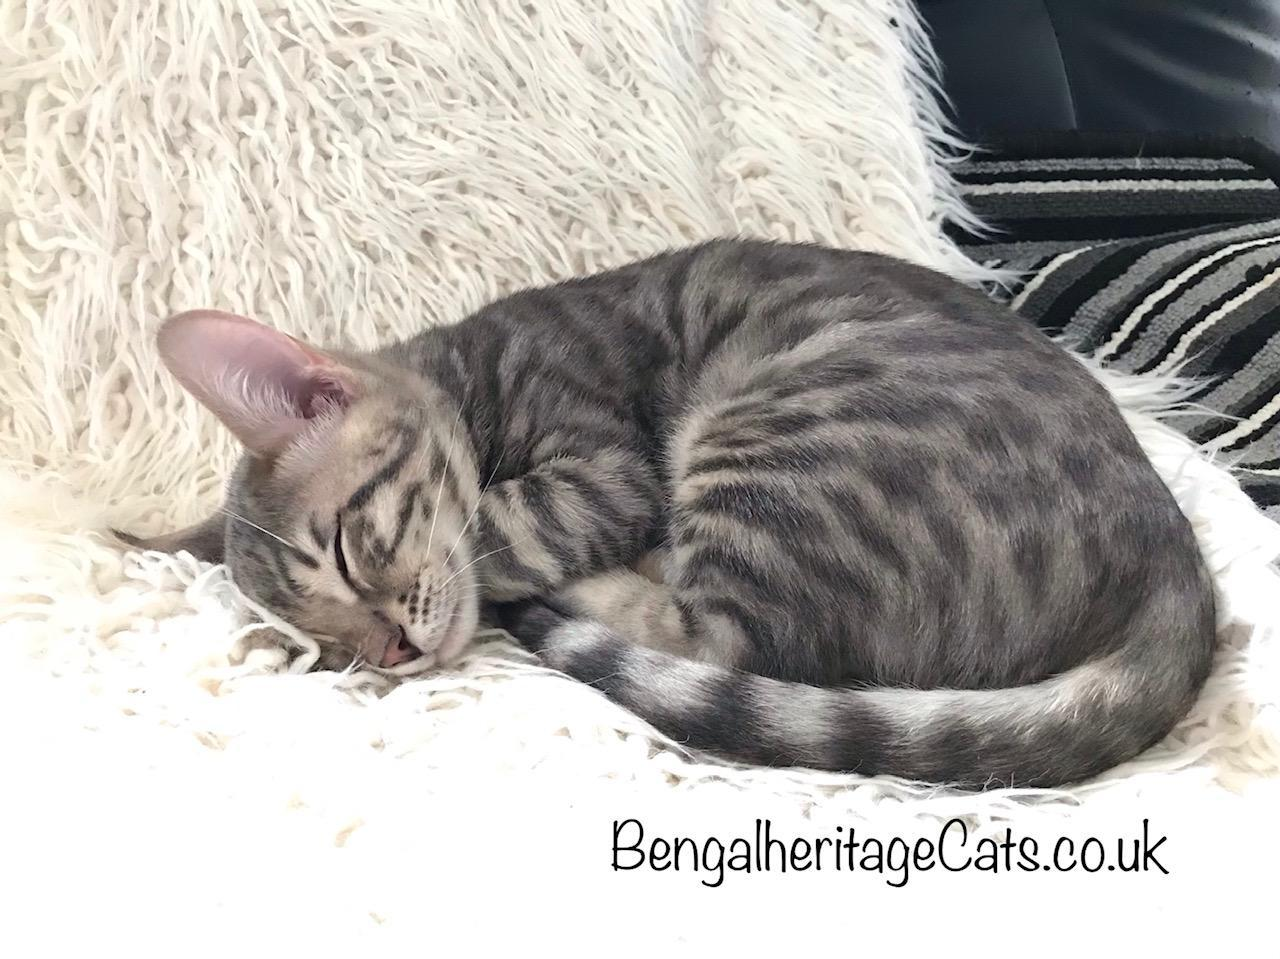 Bengal Cat,Blue Bengal Cat,Top Silver Bengal Cat, Silver Bengal Cat For Sale, Silver Bengal Kitten for Sale, Bengal Kitten for sale, Pedigree Cats, Price of Bengal, Most expensive Cats, Best Silver Bengal Cat, Top Quality Silver Bengal Cat.